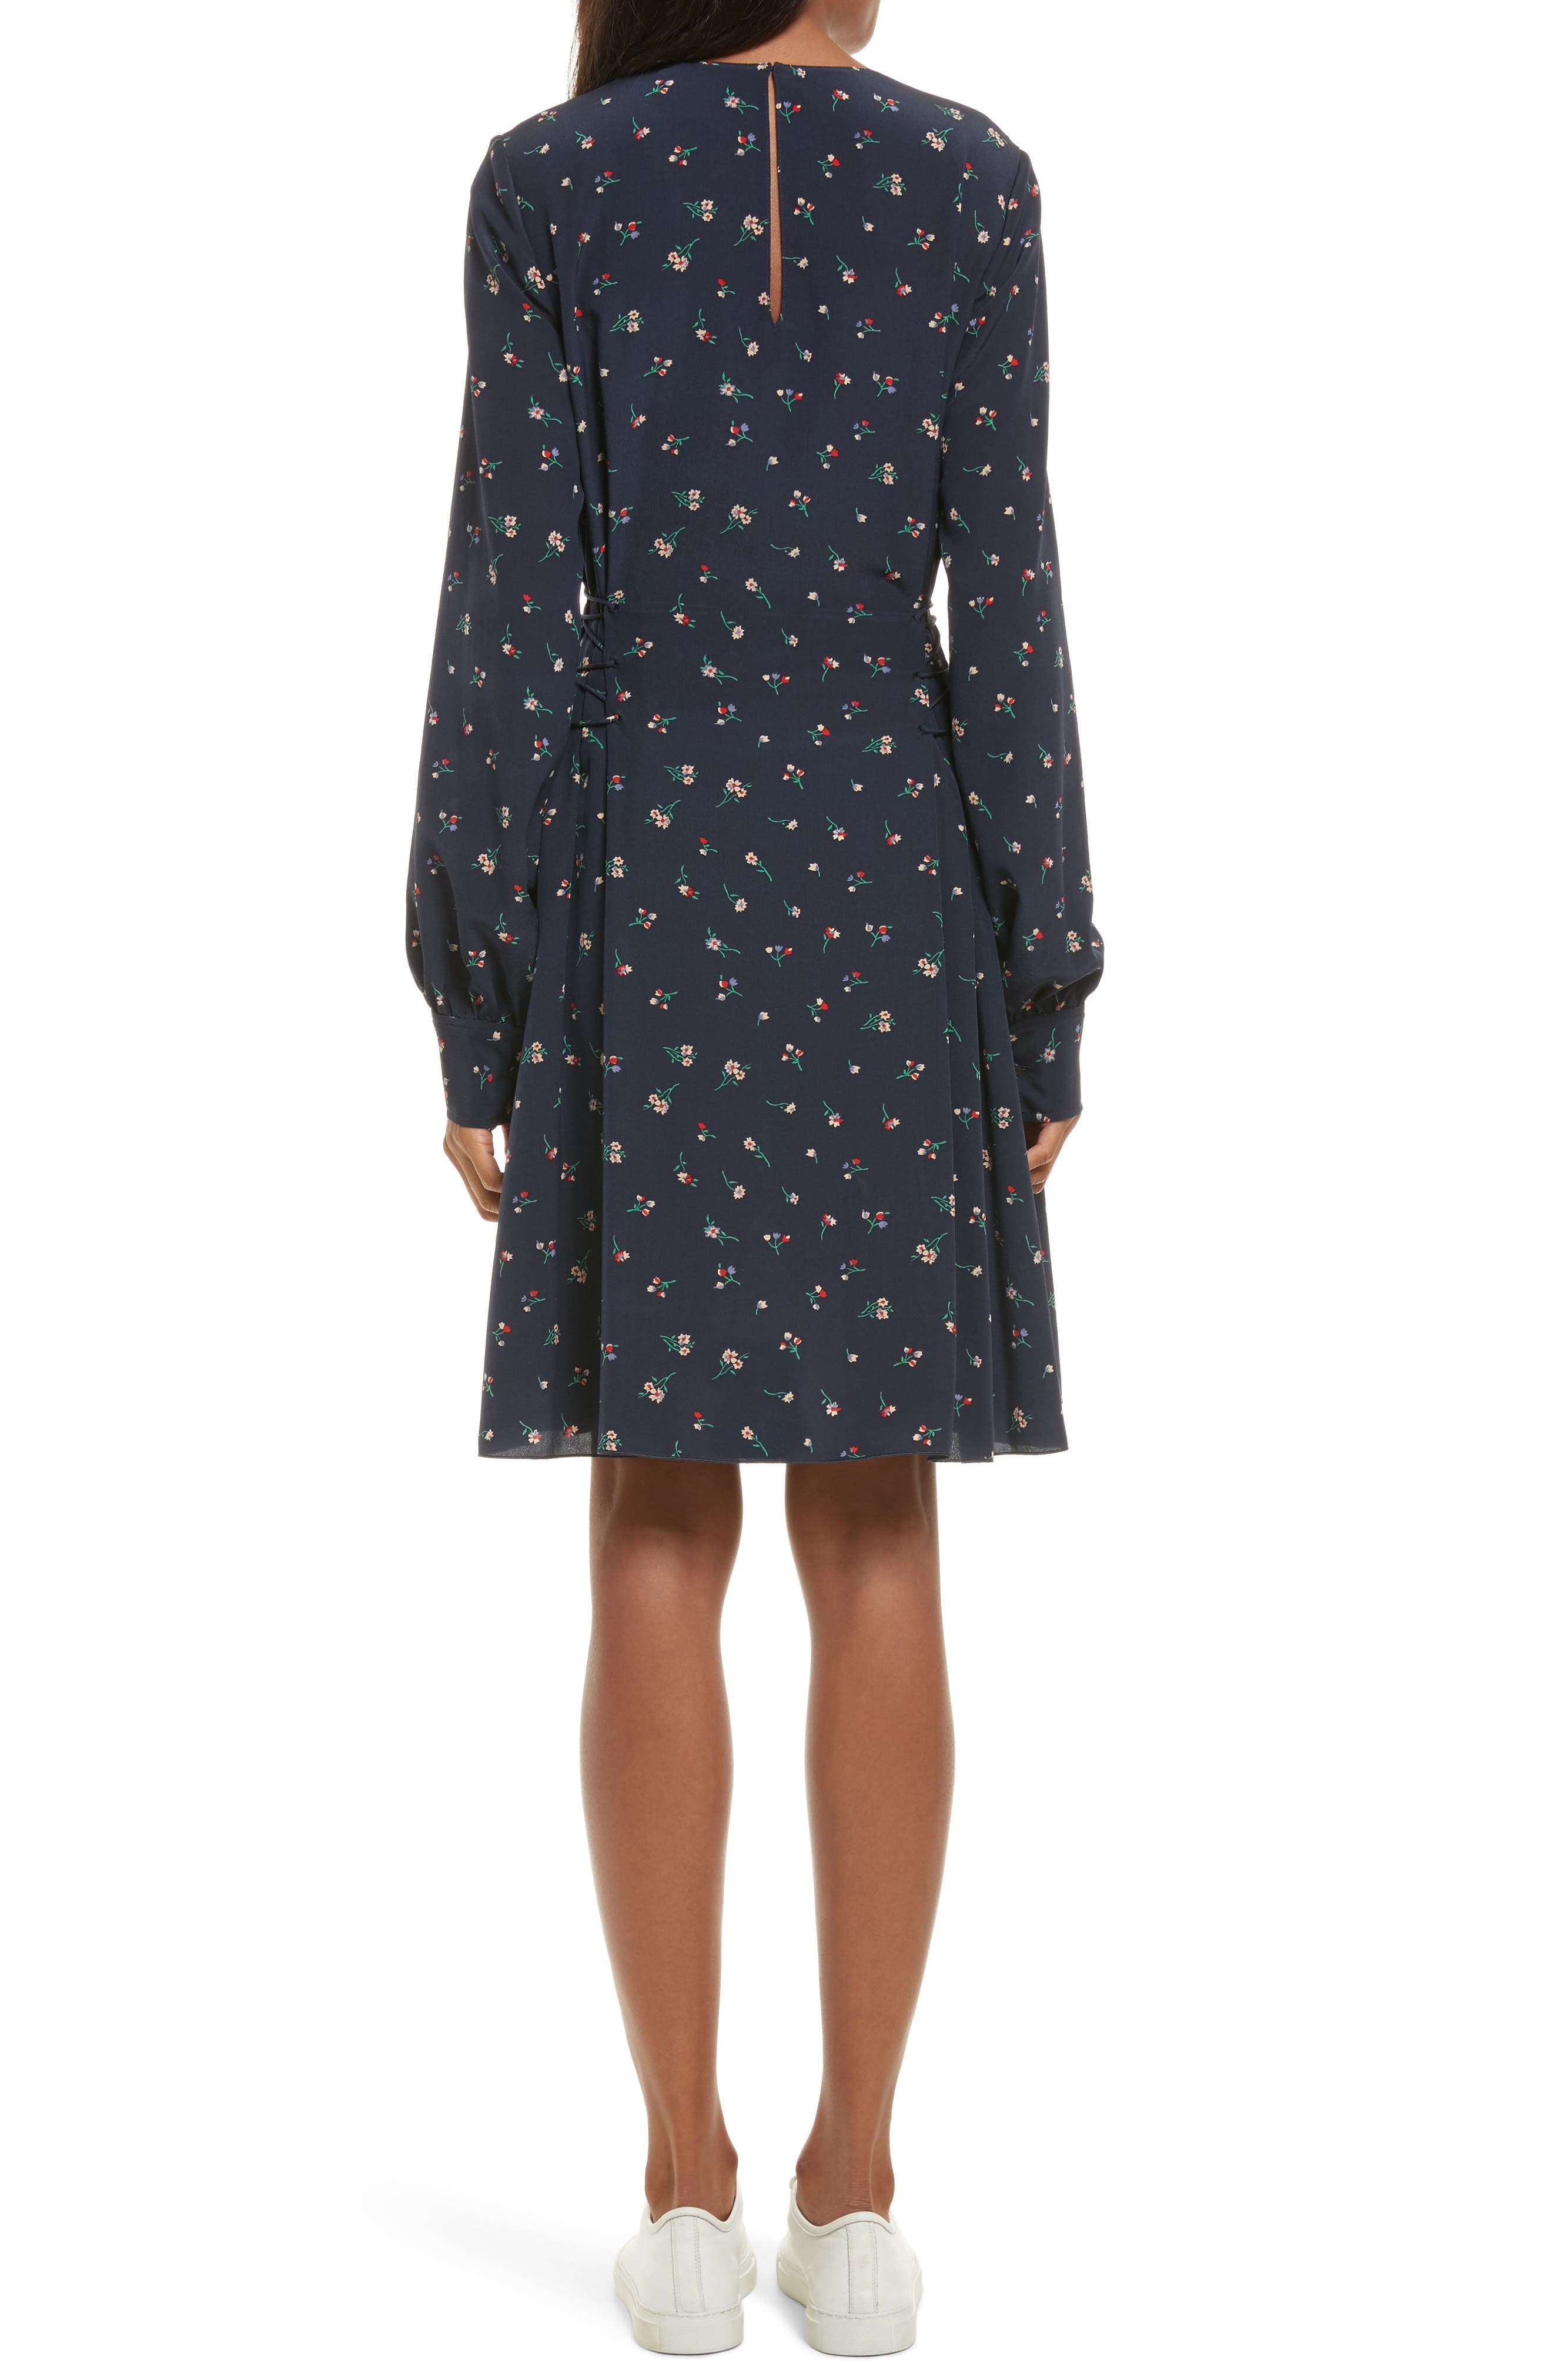 THEORY,                             Floral Print Lace-Up Silk Dress,                             Alternate thumbnail 2, color,                             491